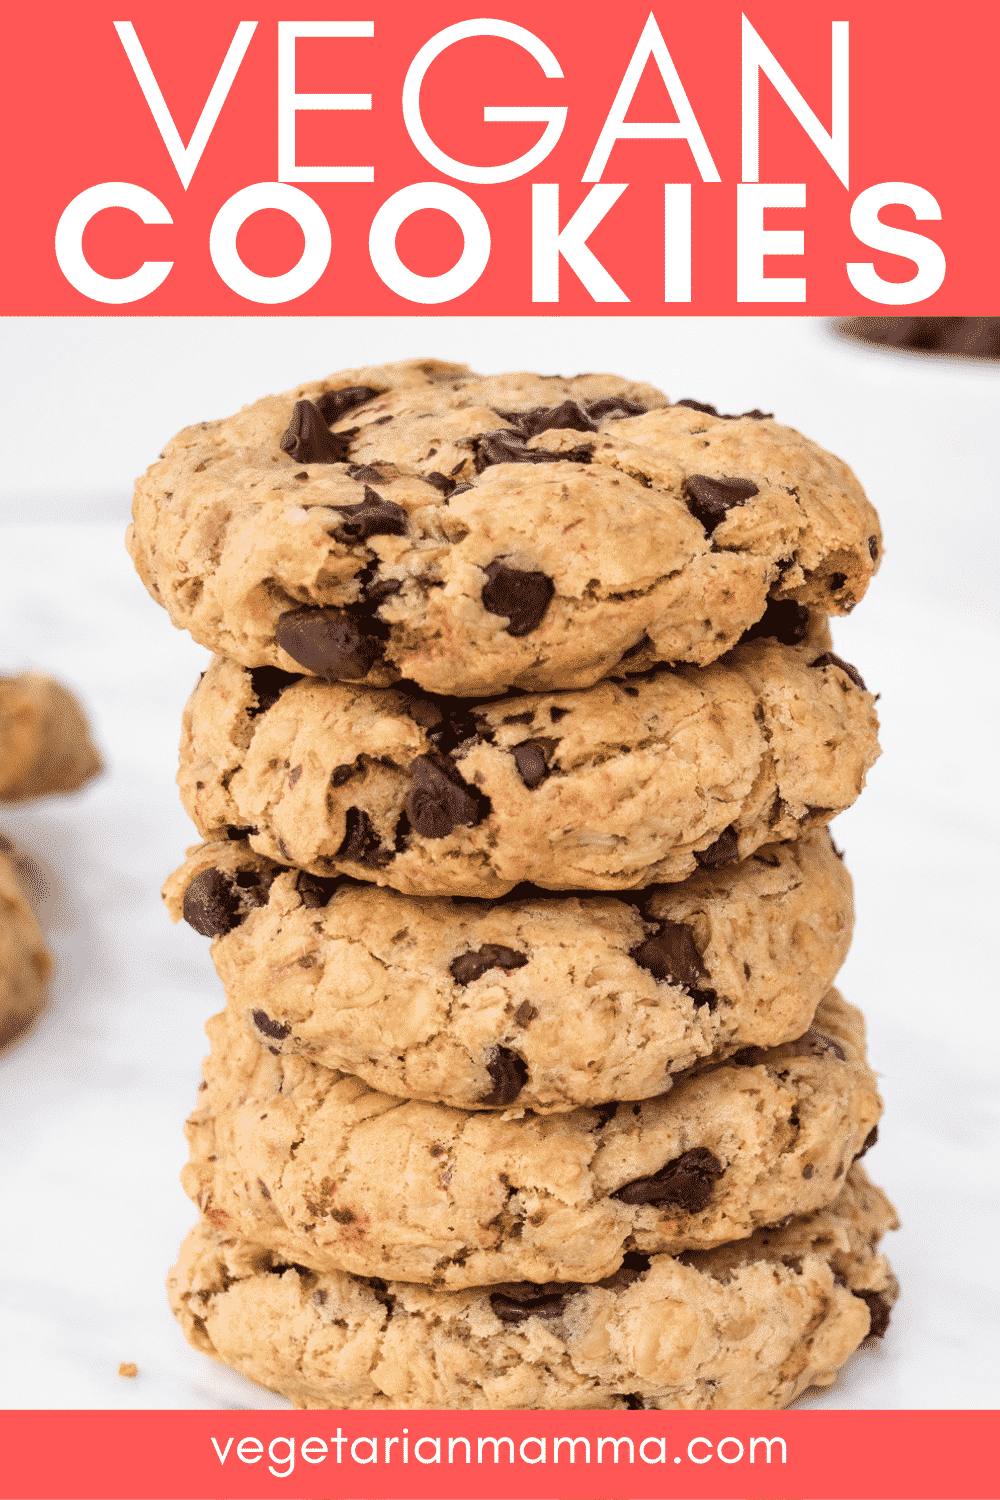 Vegan Oatmeal Chocolate Chip Cookies are chewy, soft, and packed with chocolate! These are truly the best gluten-free cookies. #glutenfreecookies #vegandessert